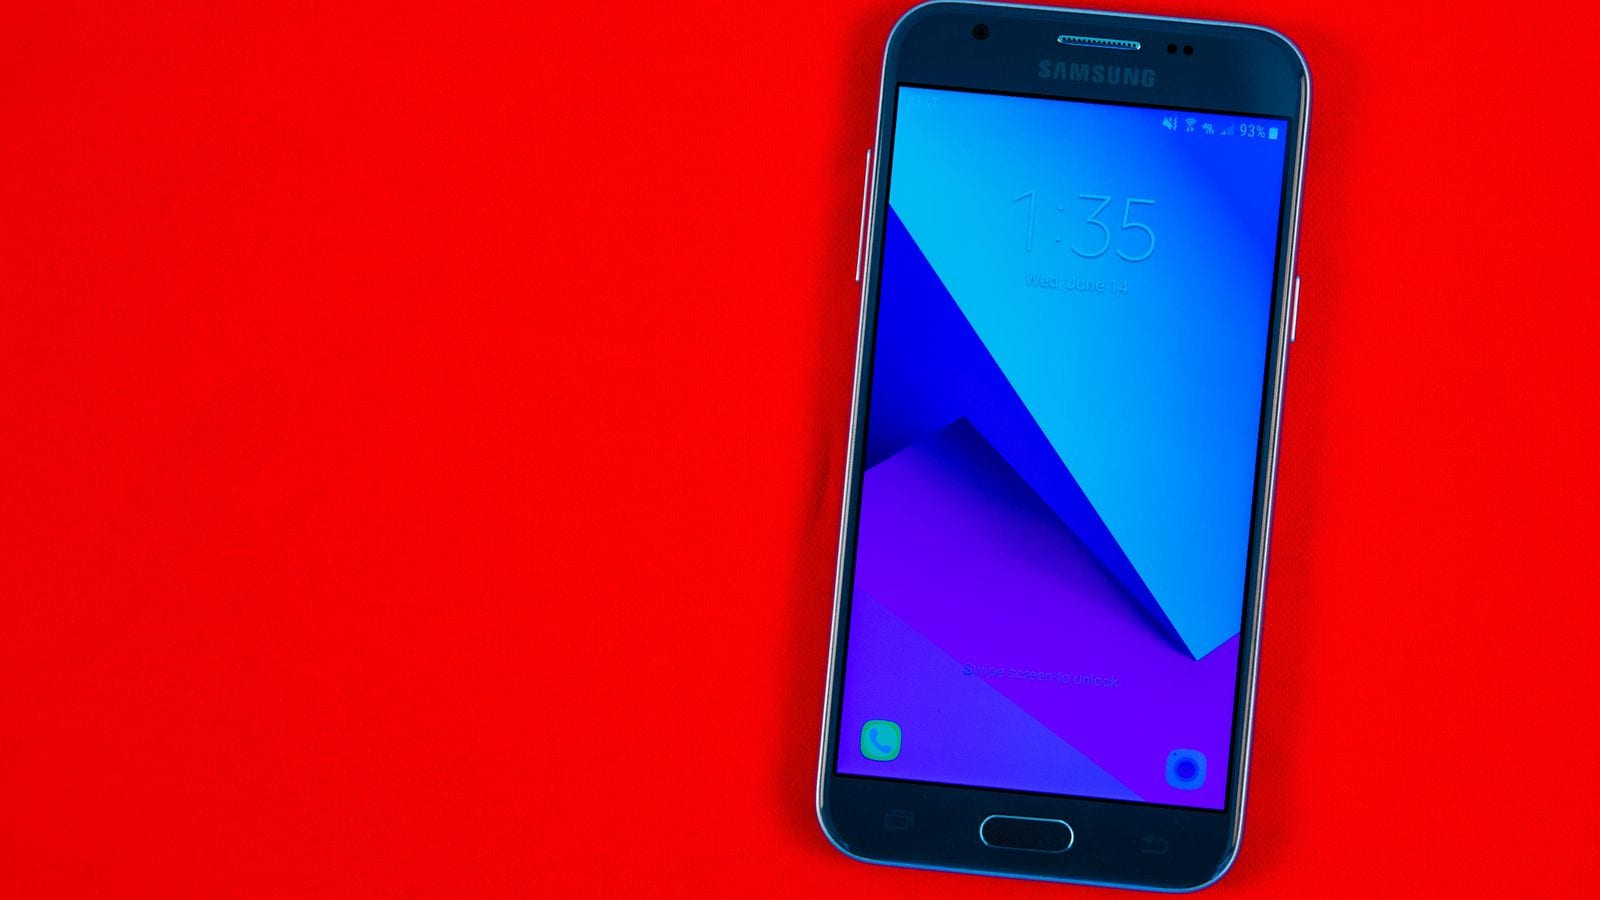 Samsung Galaxy J3 Most Common Issues And How To Resolve Them